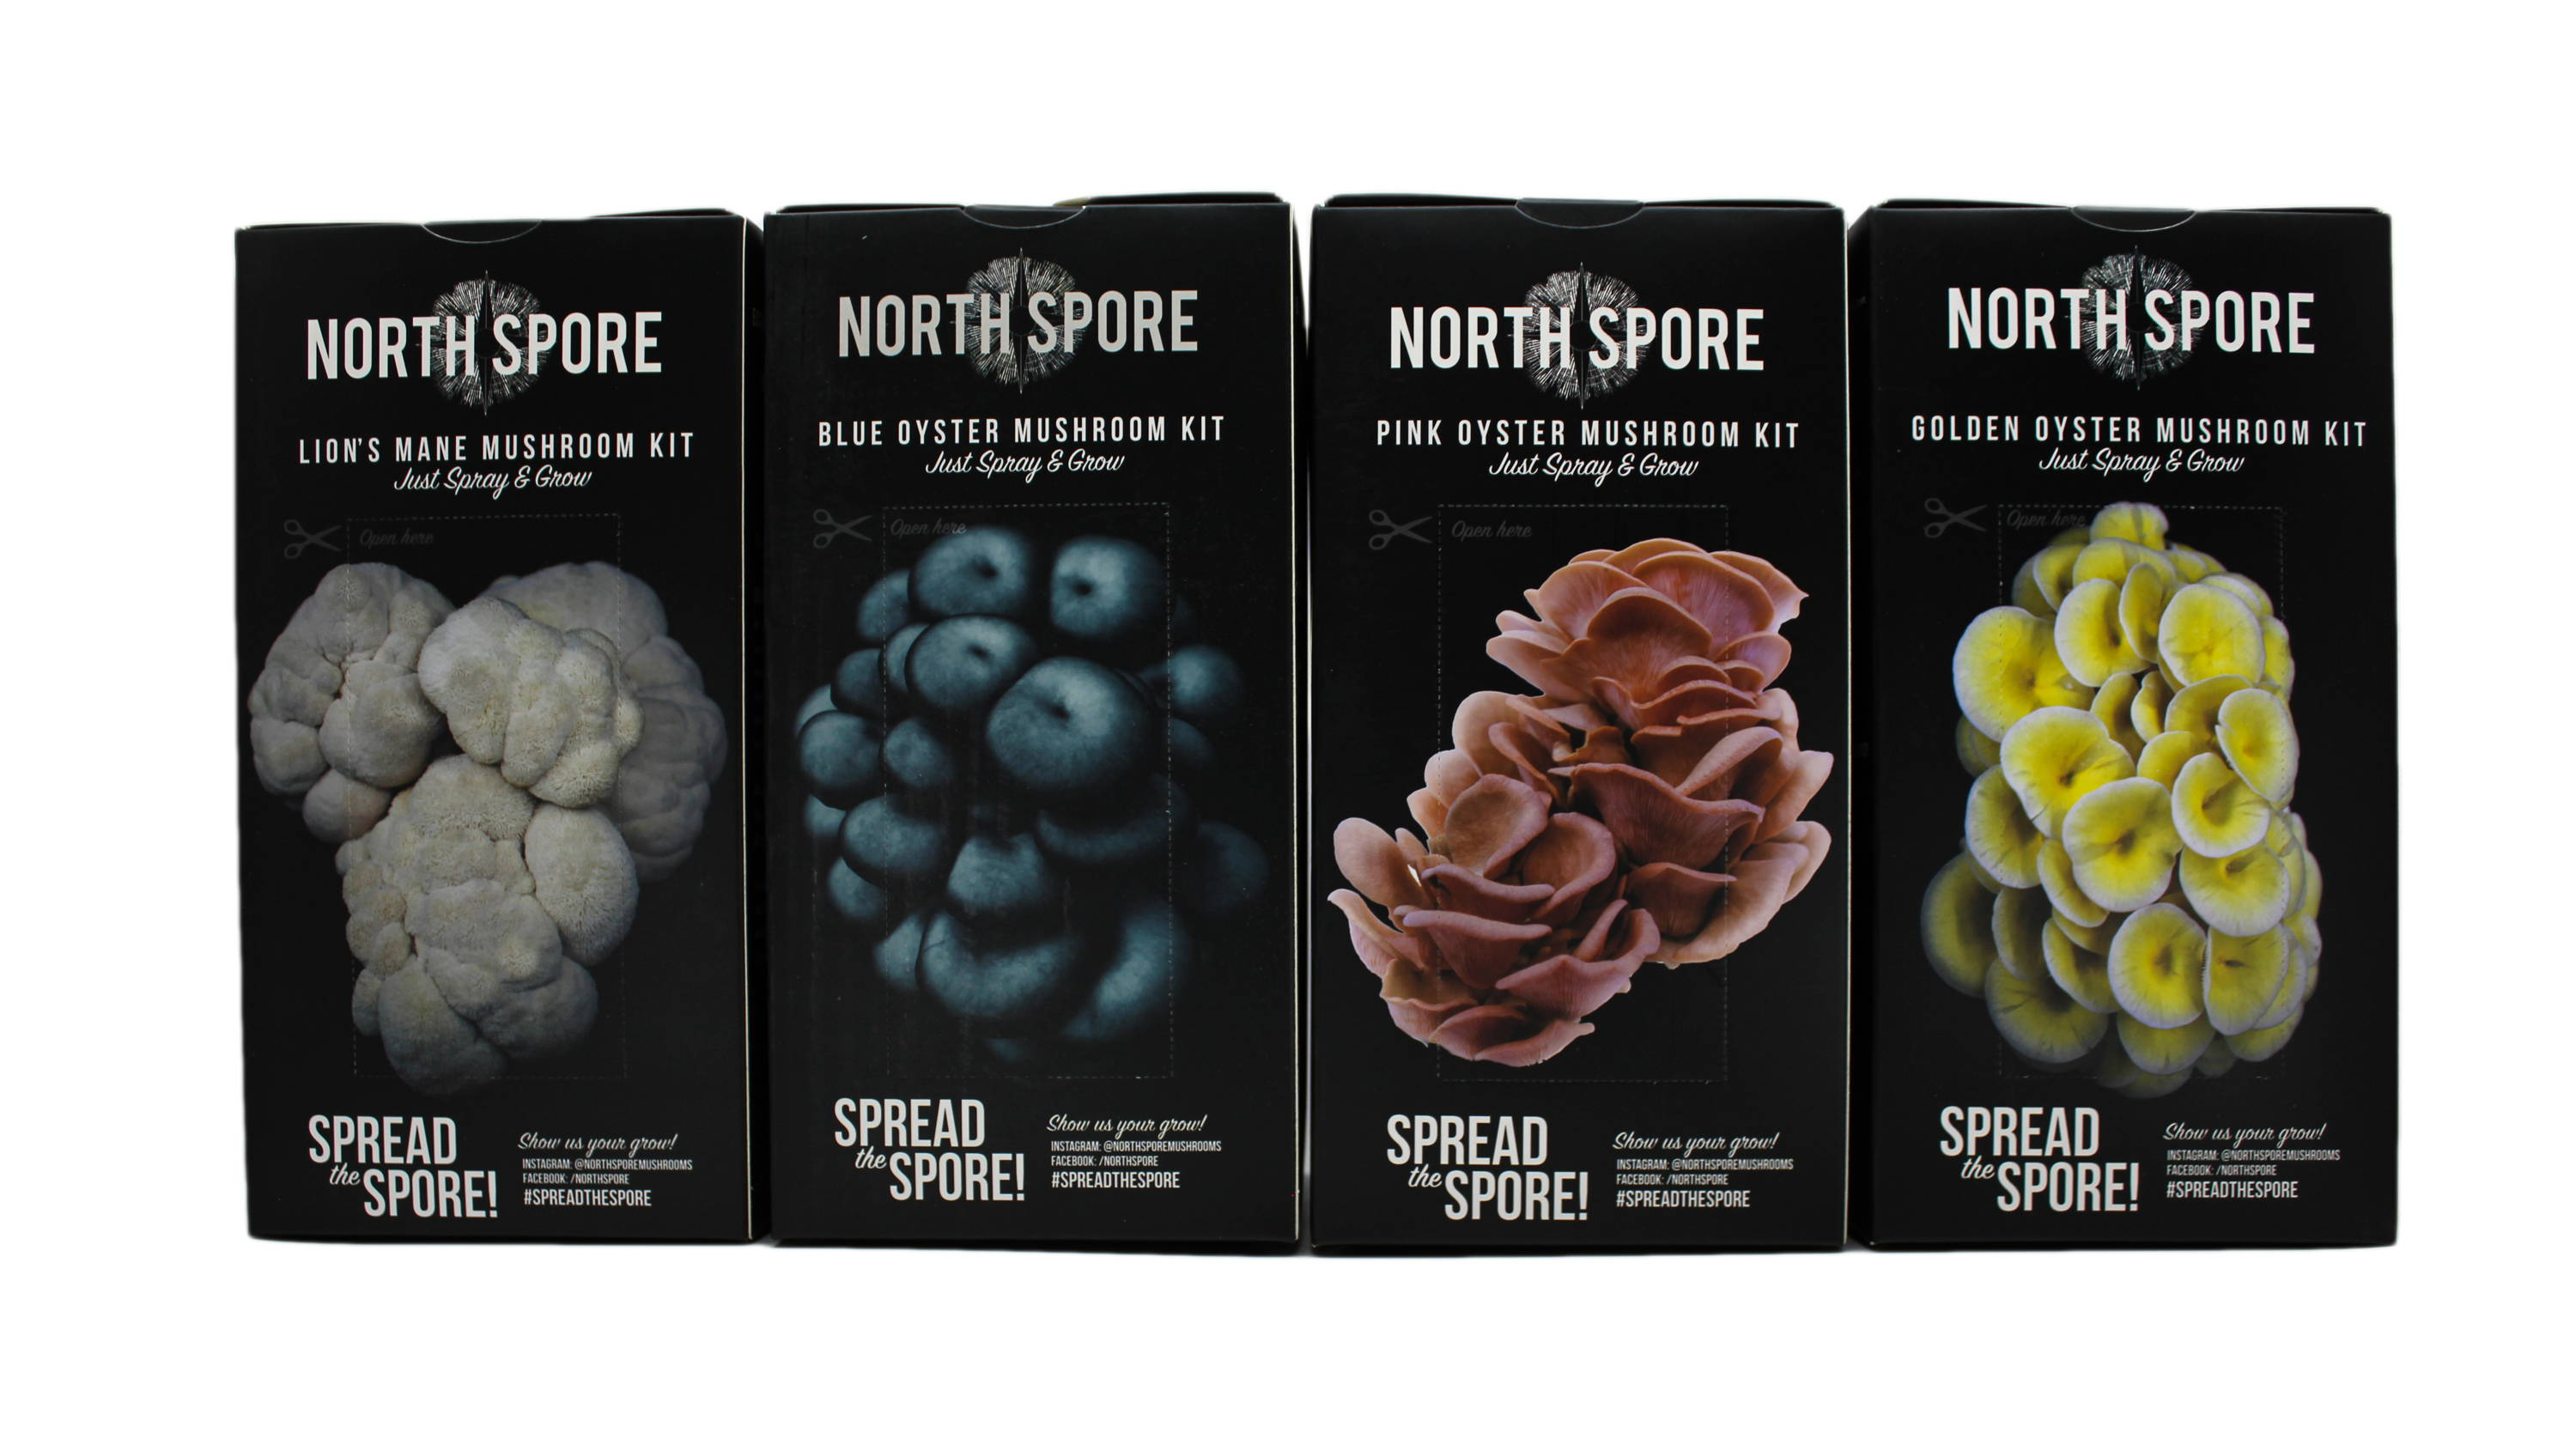 North Spore Spray and Grow Kits in 4 species